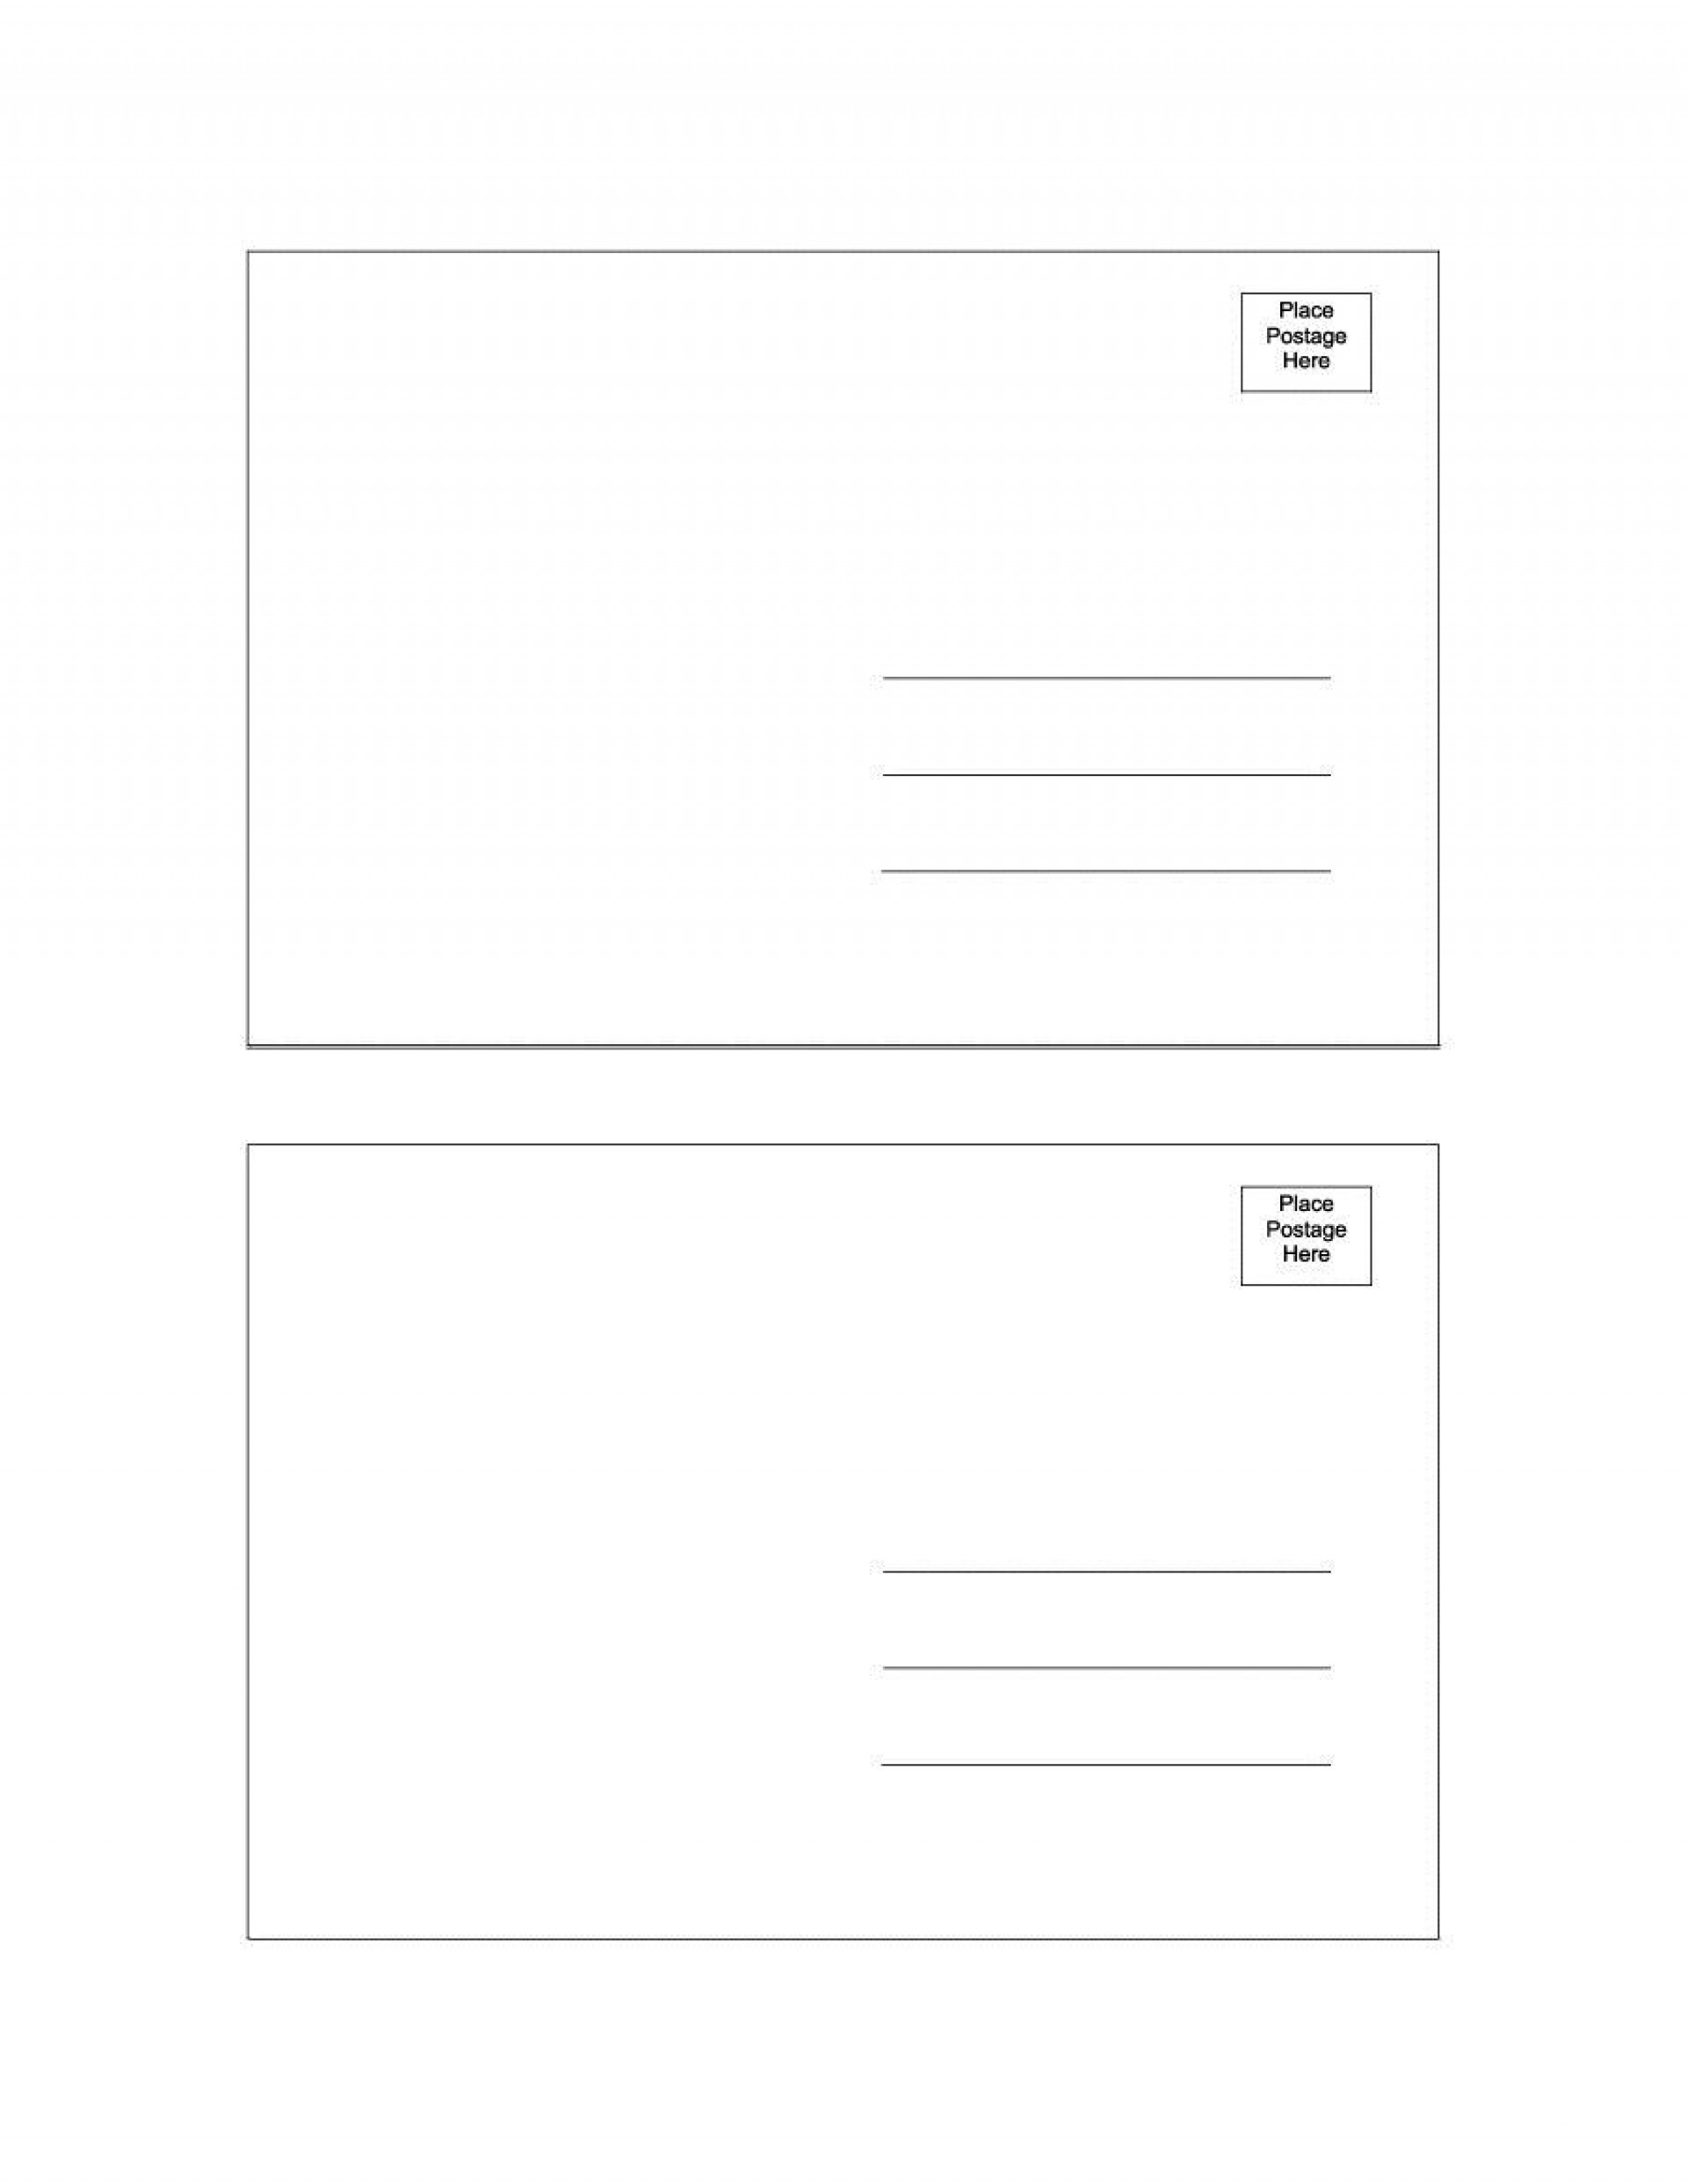 001 Incredible Free Postcard Template Download Microsoft Word Highest Quality 1920